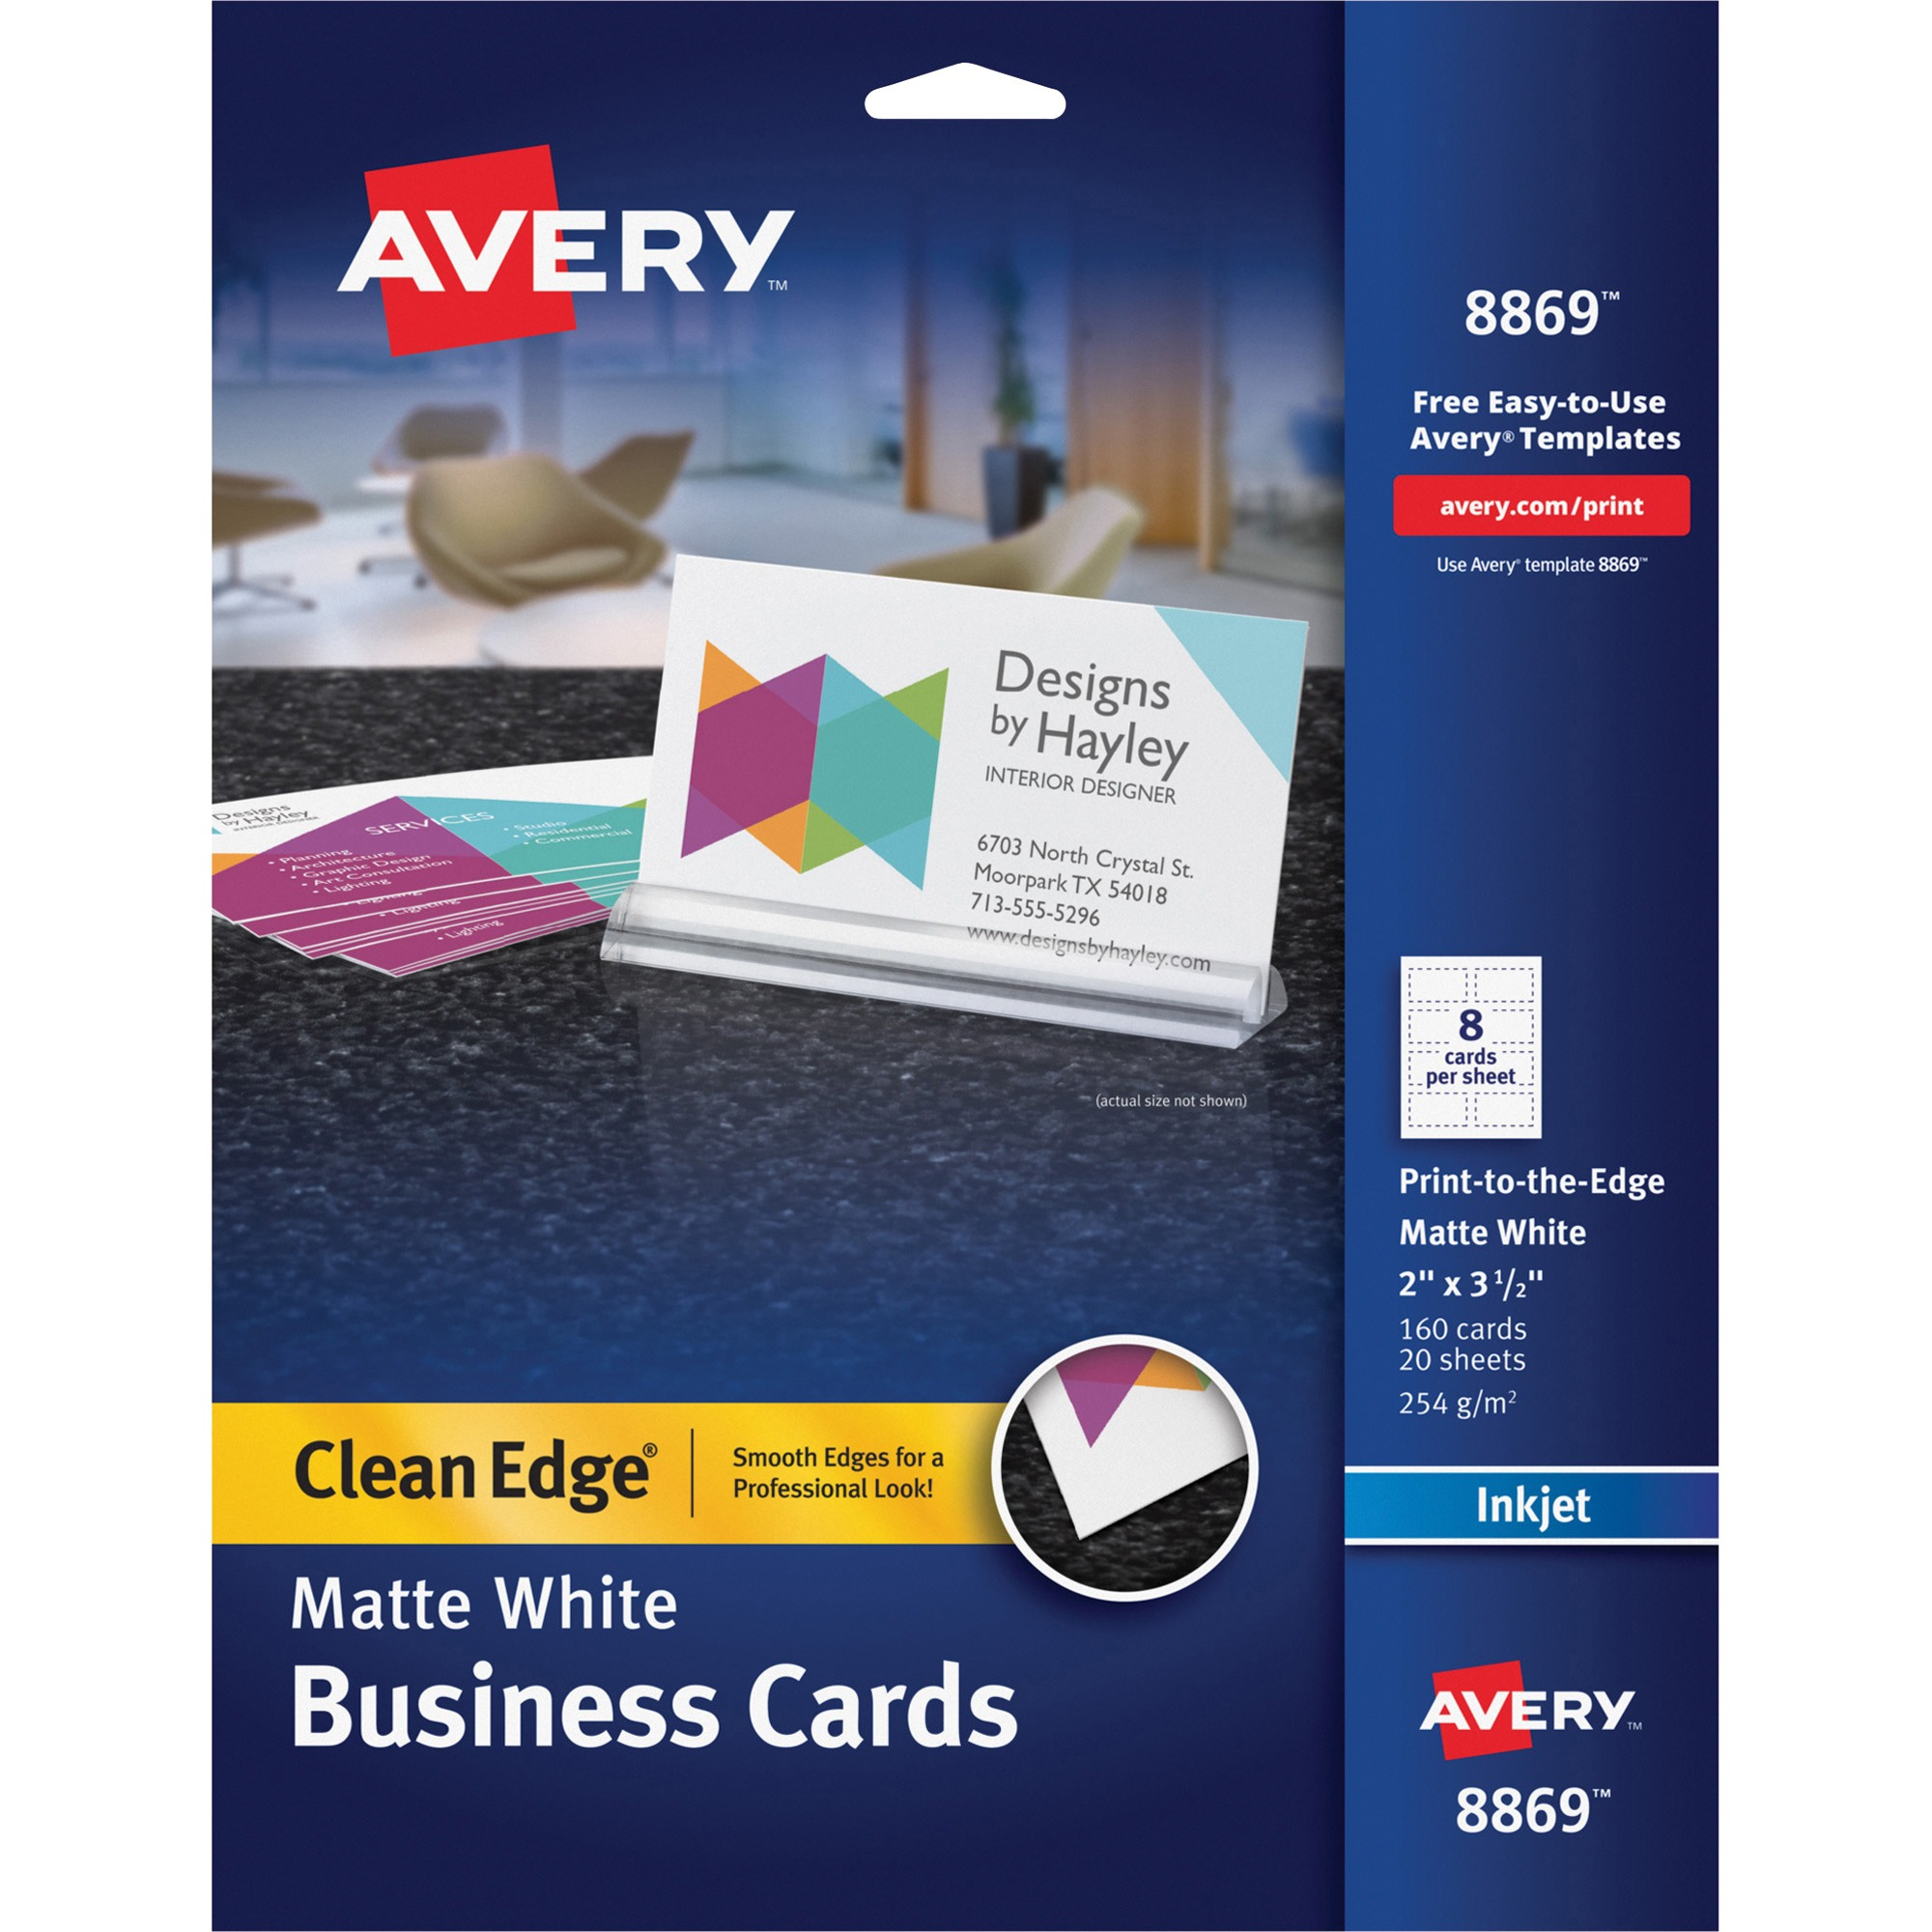 Avery Print-to-the-Edge True Print Business Cards, Inkjet, 2x3 1/2, Wht, 160/Pk